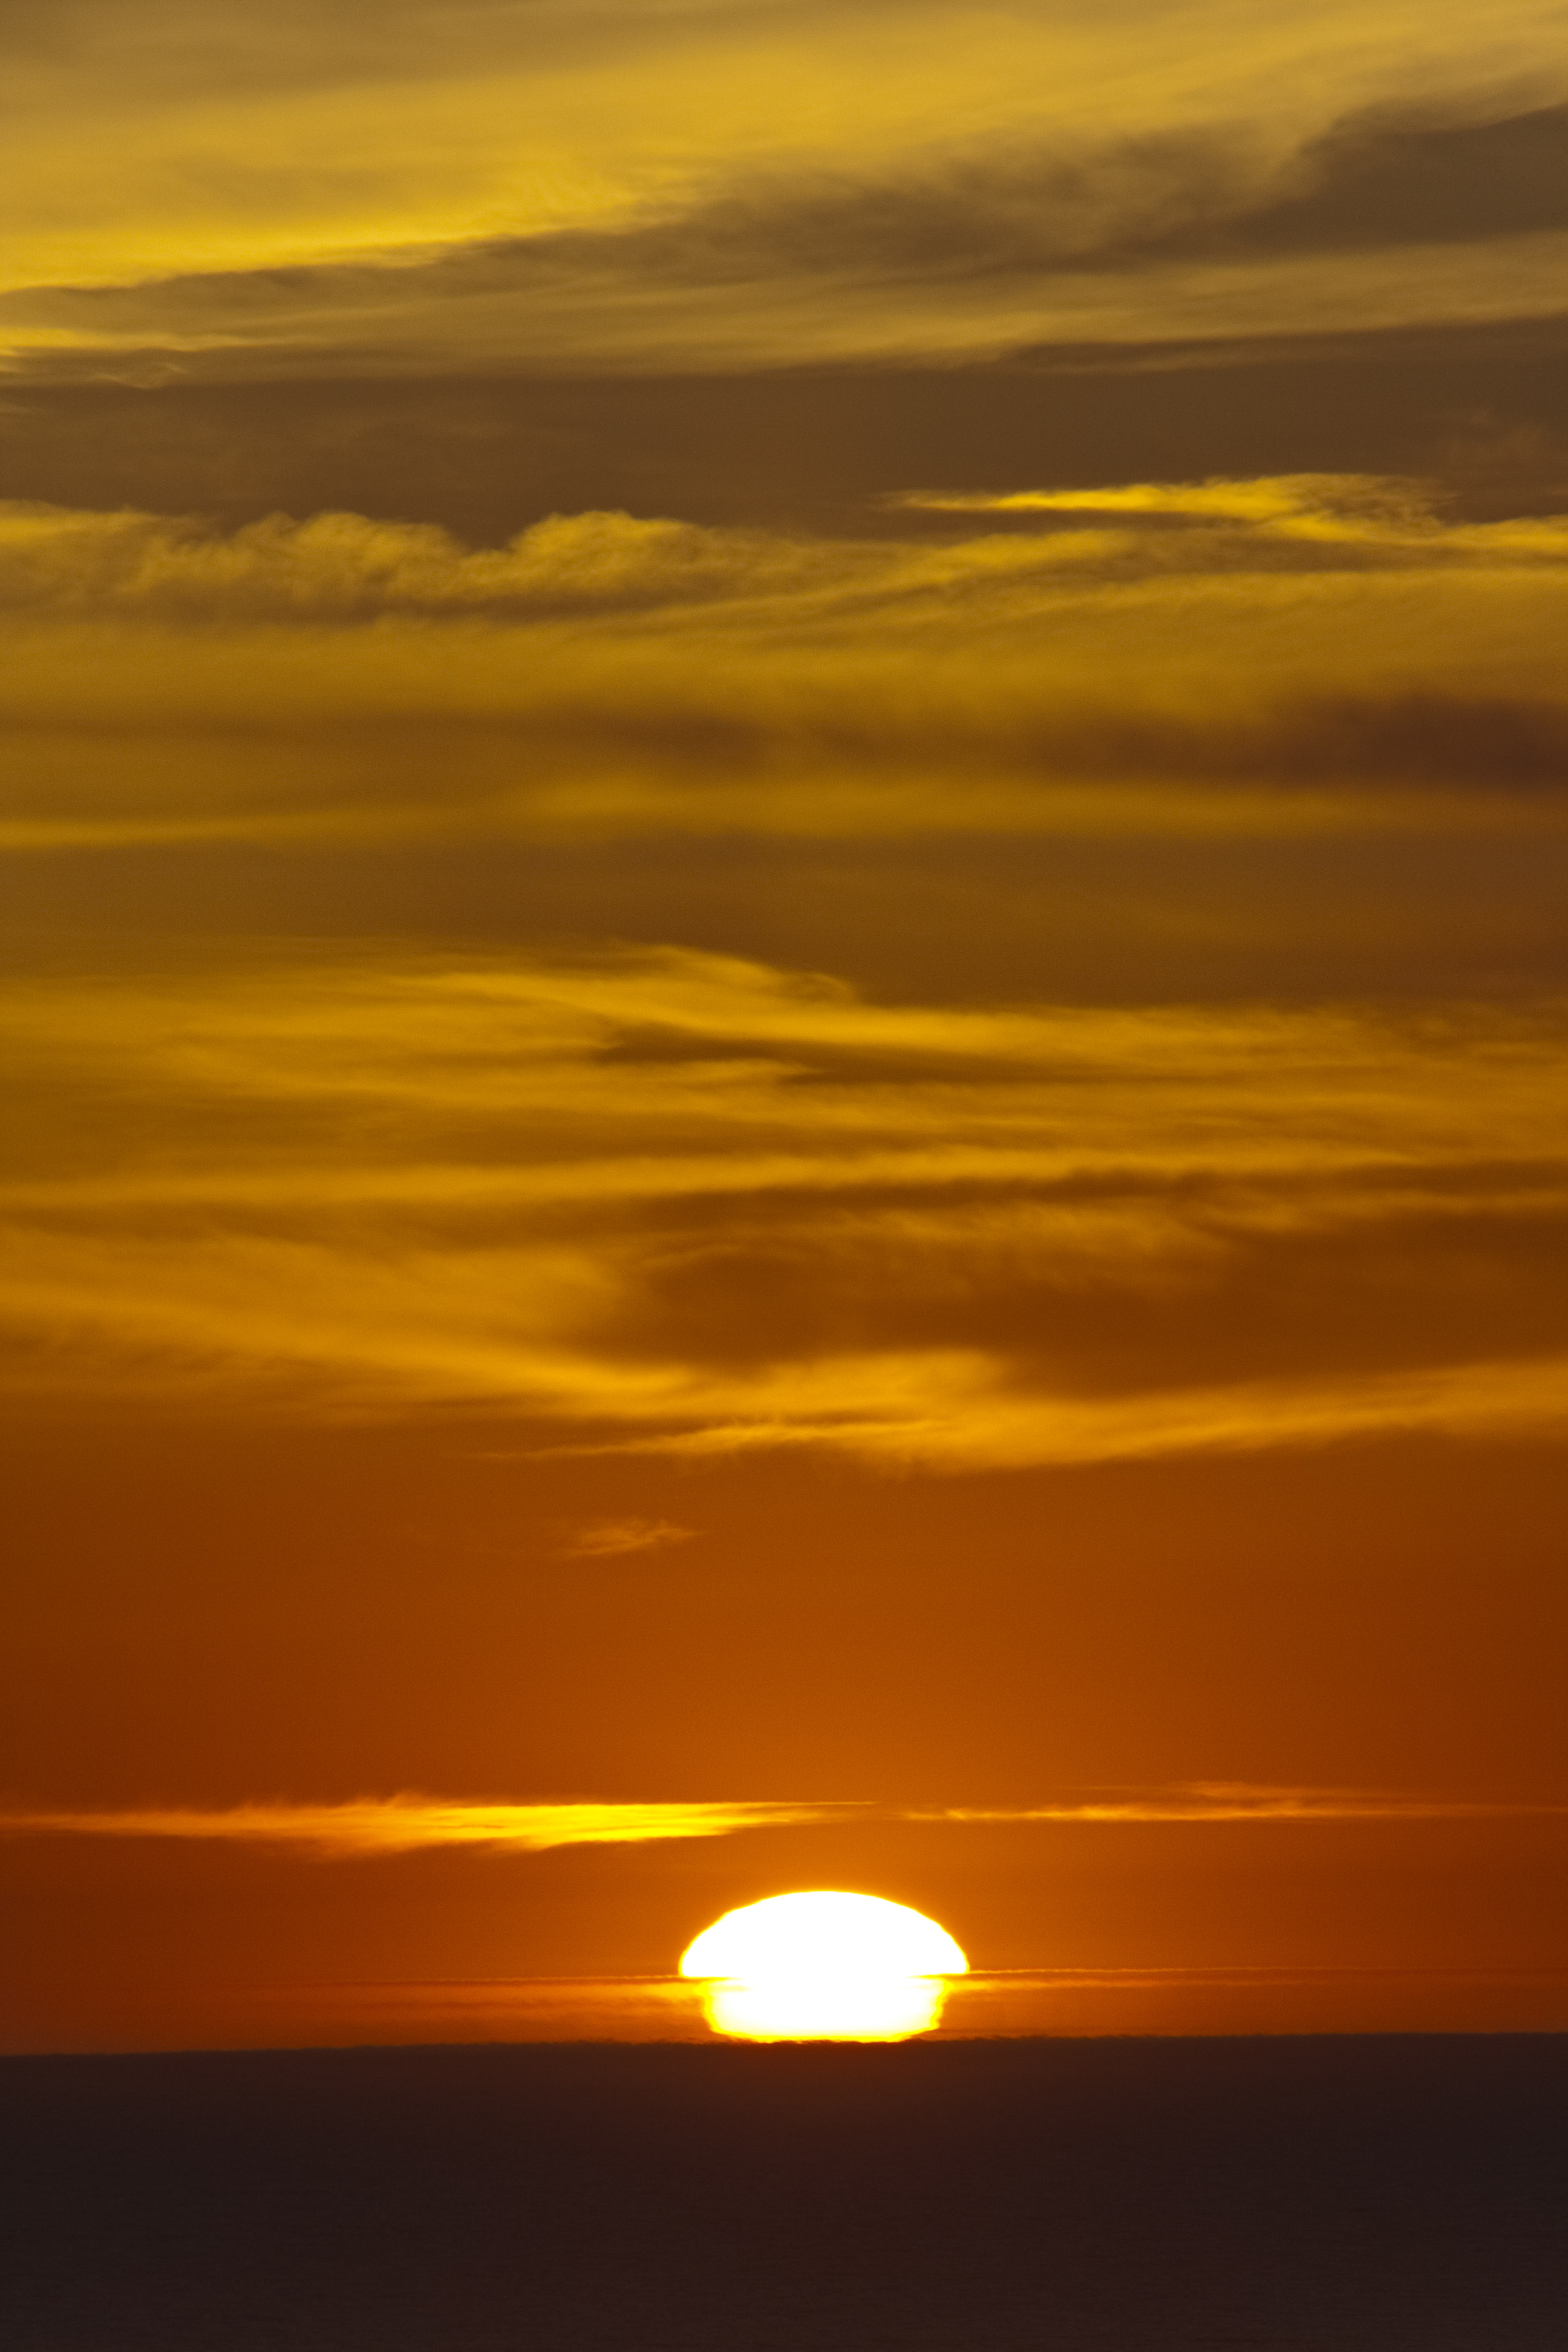 123574 download wallpaper Nature, Sunset, Horizon, Sky, Sun screensavers and pictures for free